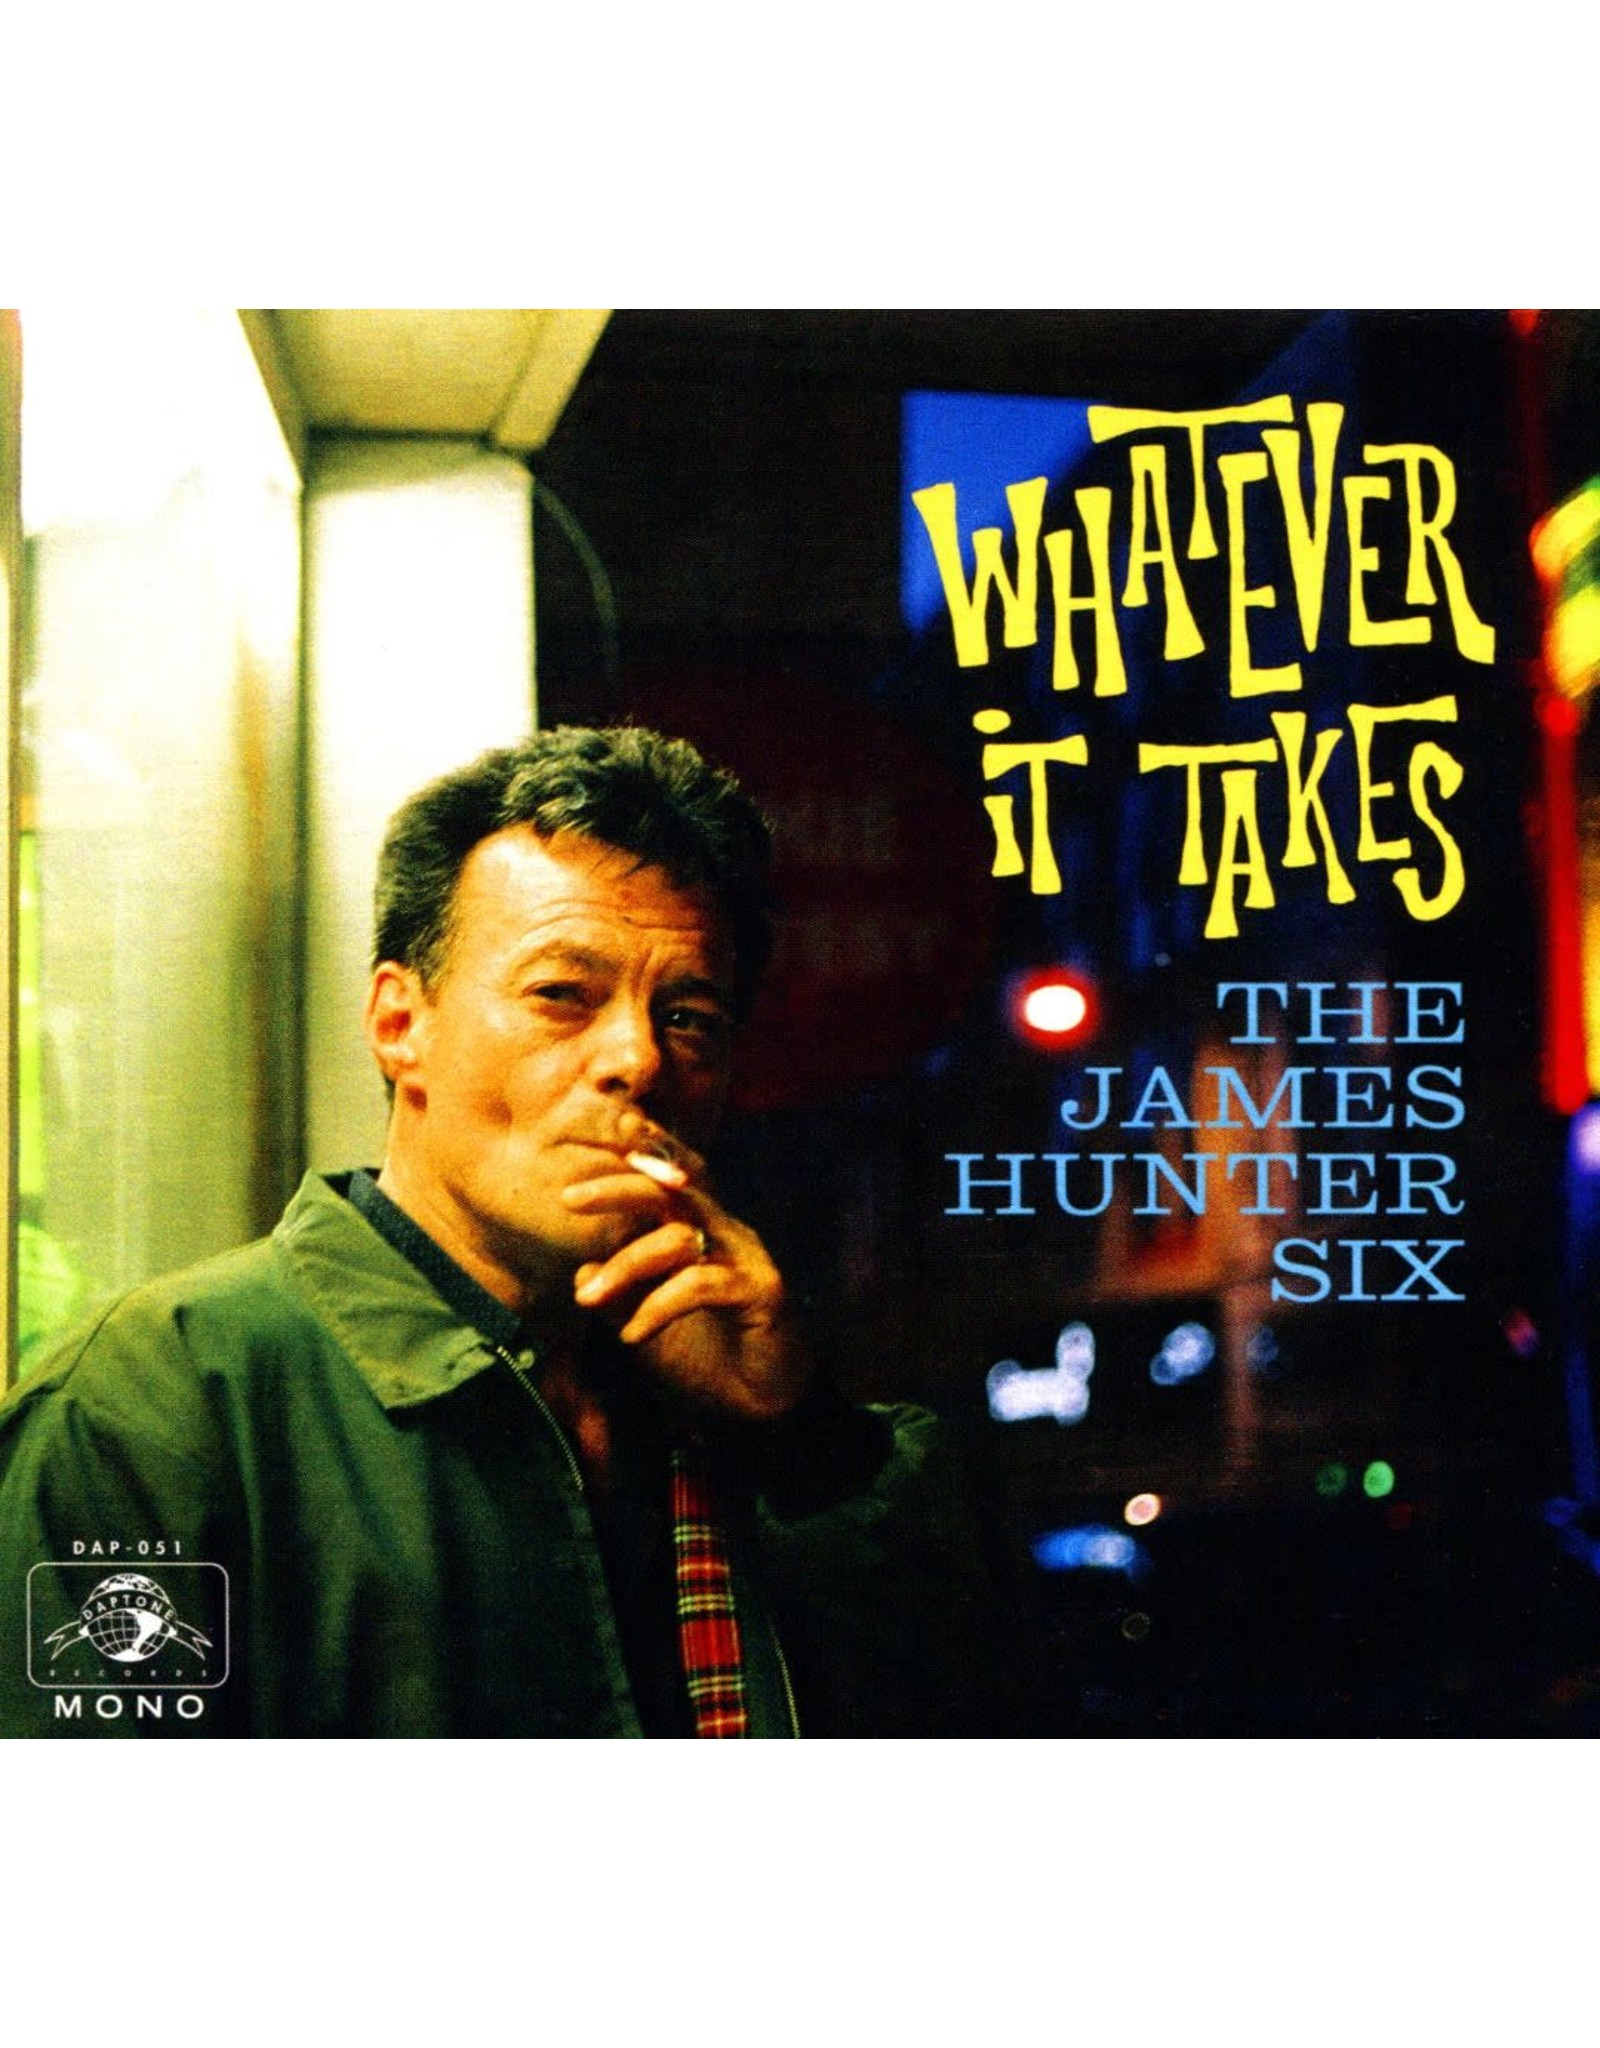 Hunter, James Six - Whatever it Takes CD